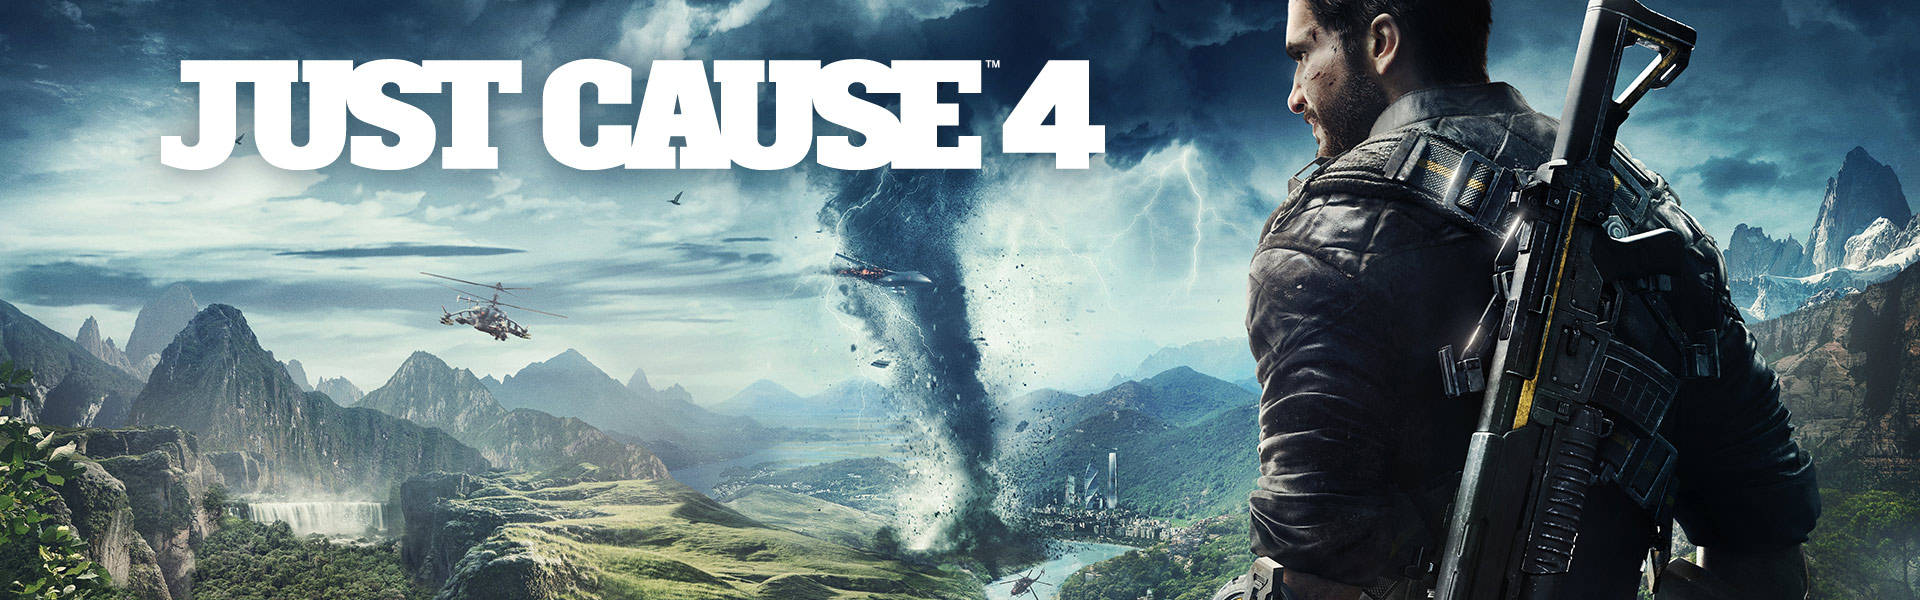 Just Cause 4, Rico Rodriguez stands on a cliff overlooking Solis being ravaged by a tornado